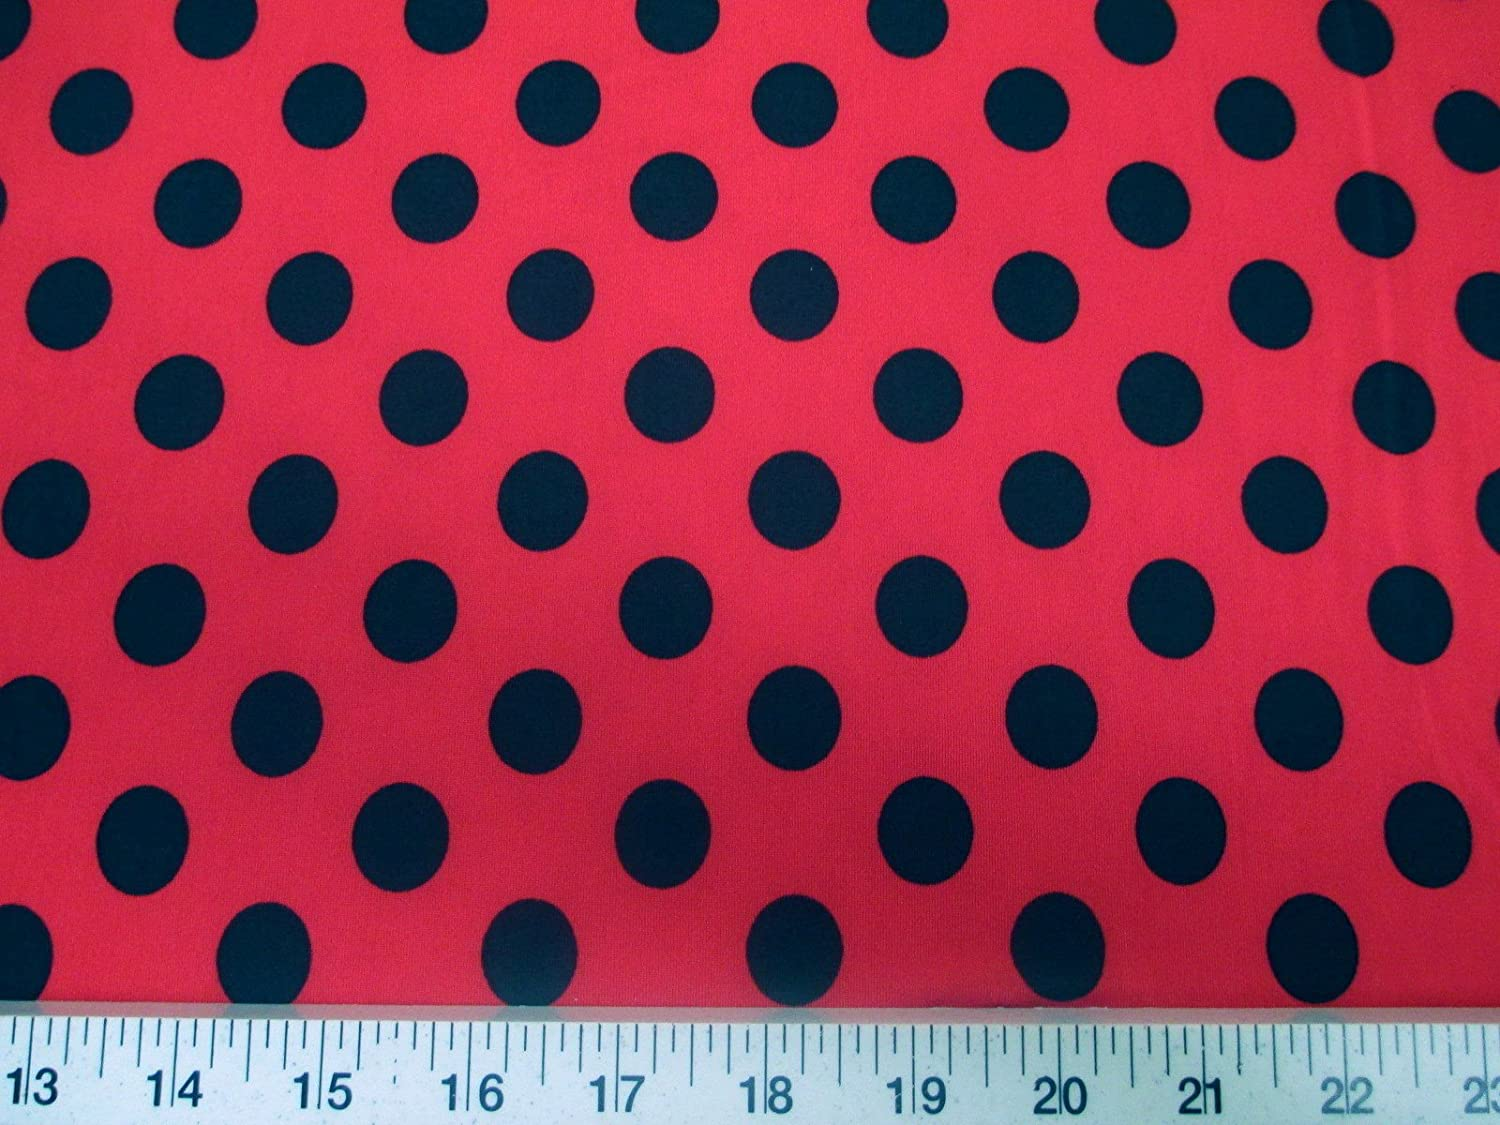 5033451d284 Amazon.com: Discount Fabric Printed Jersey Knit ITY Stretch Red with Black  Polka Dots G20